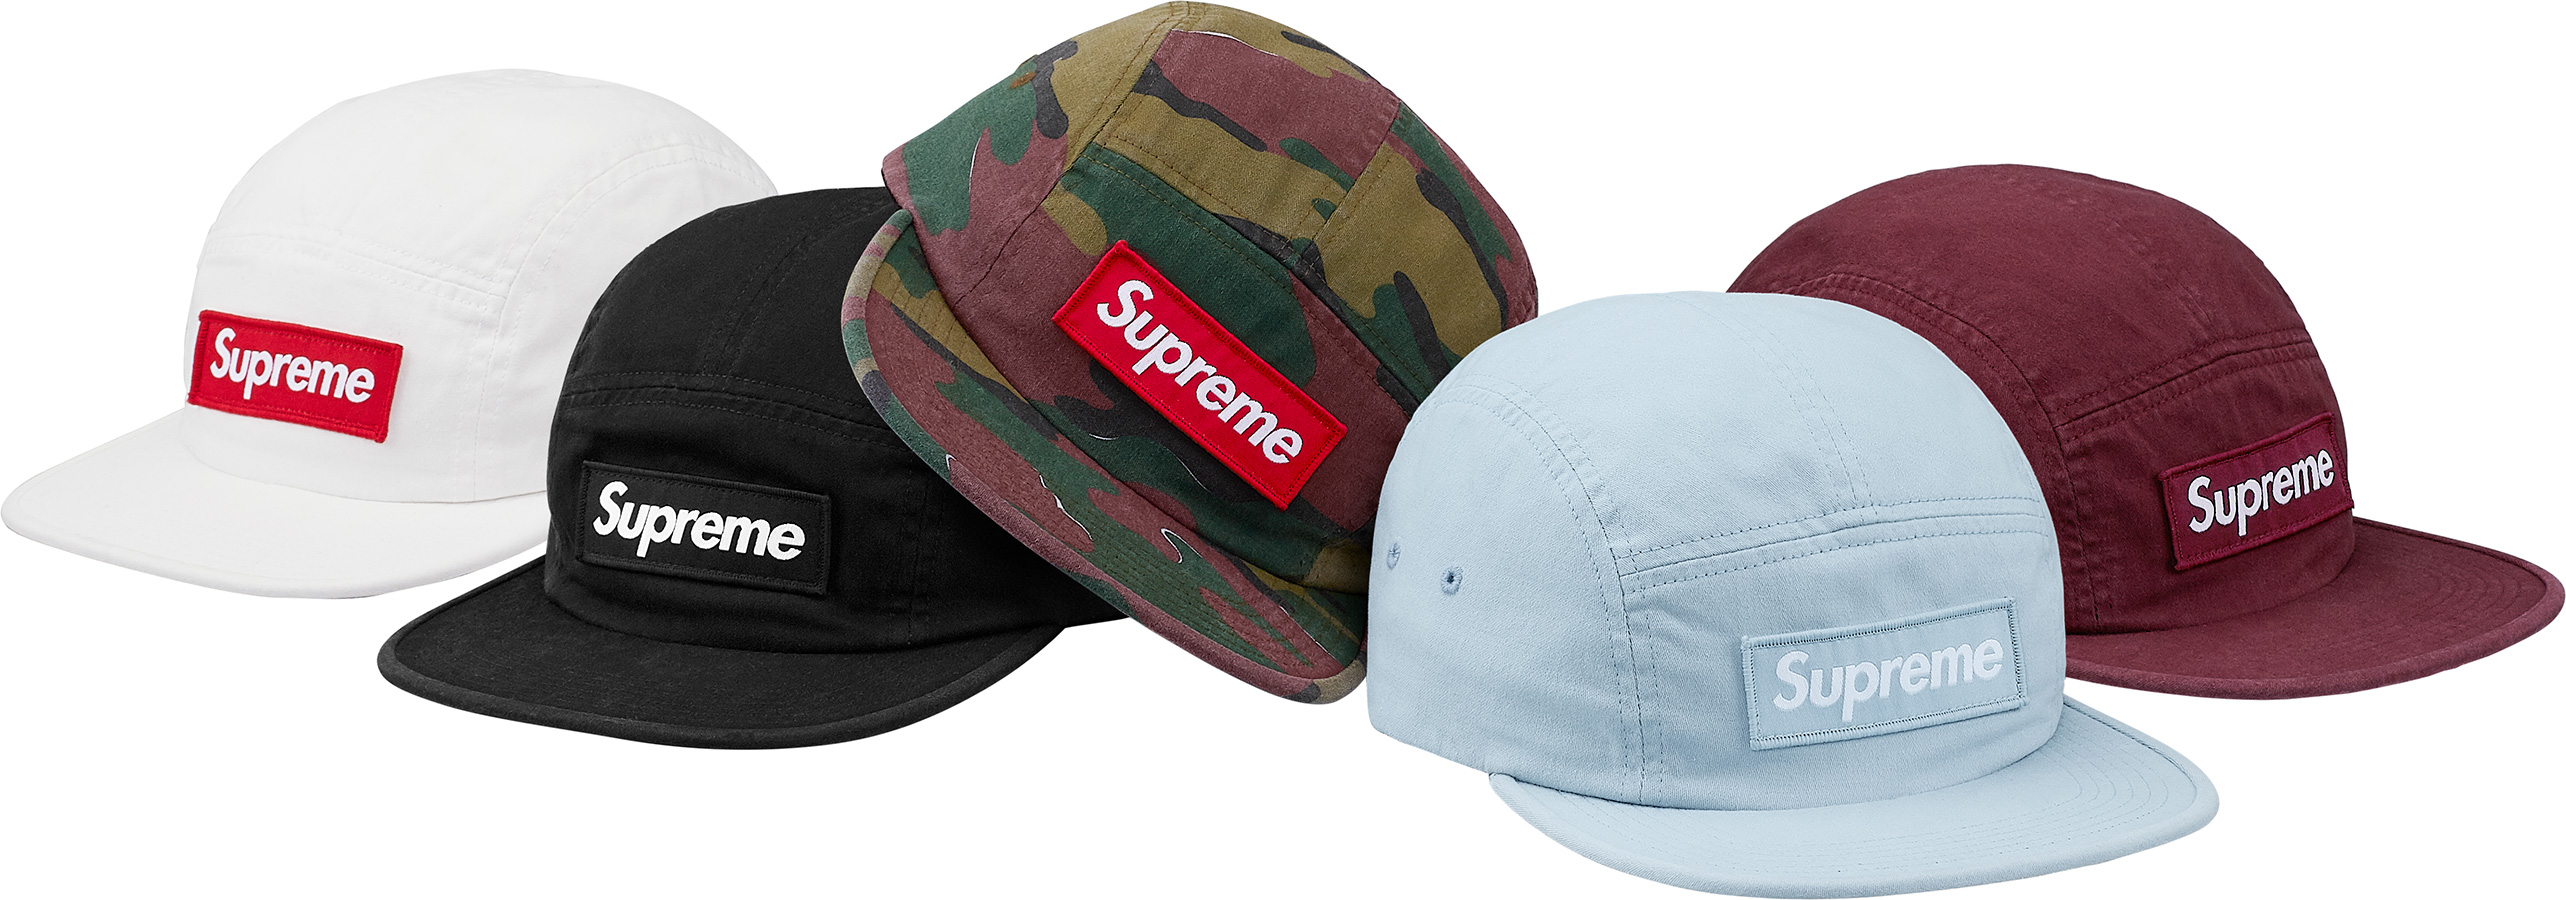 5fe3f946 supreme-18ss-spring-summer-military-camp-cap